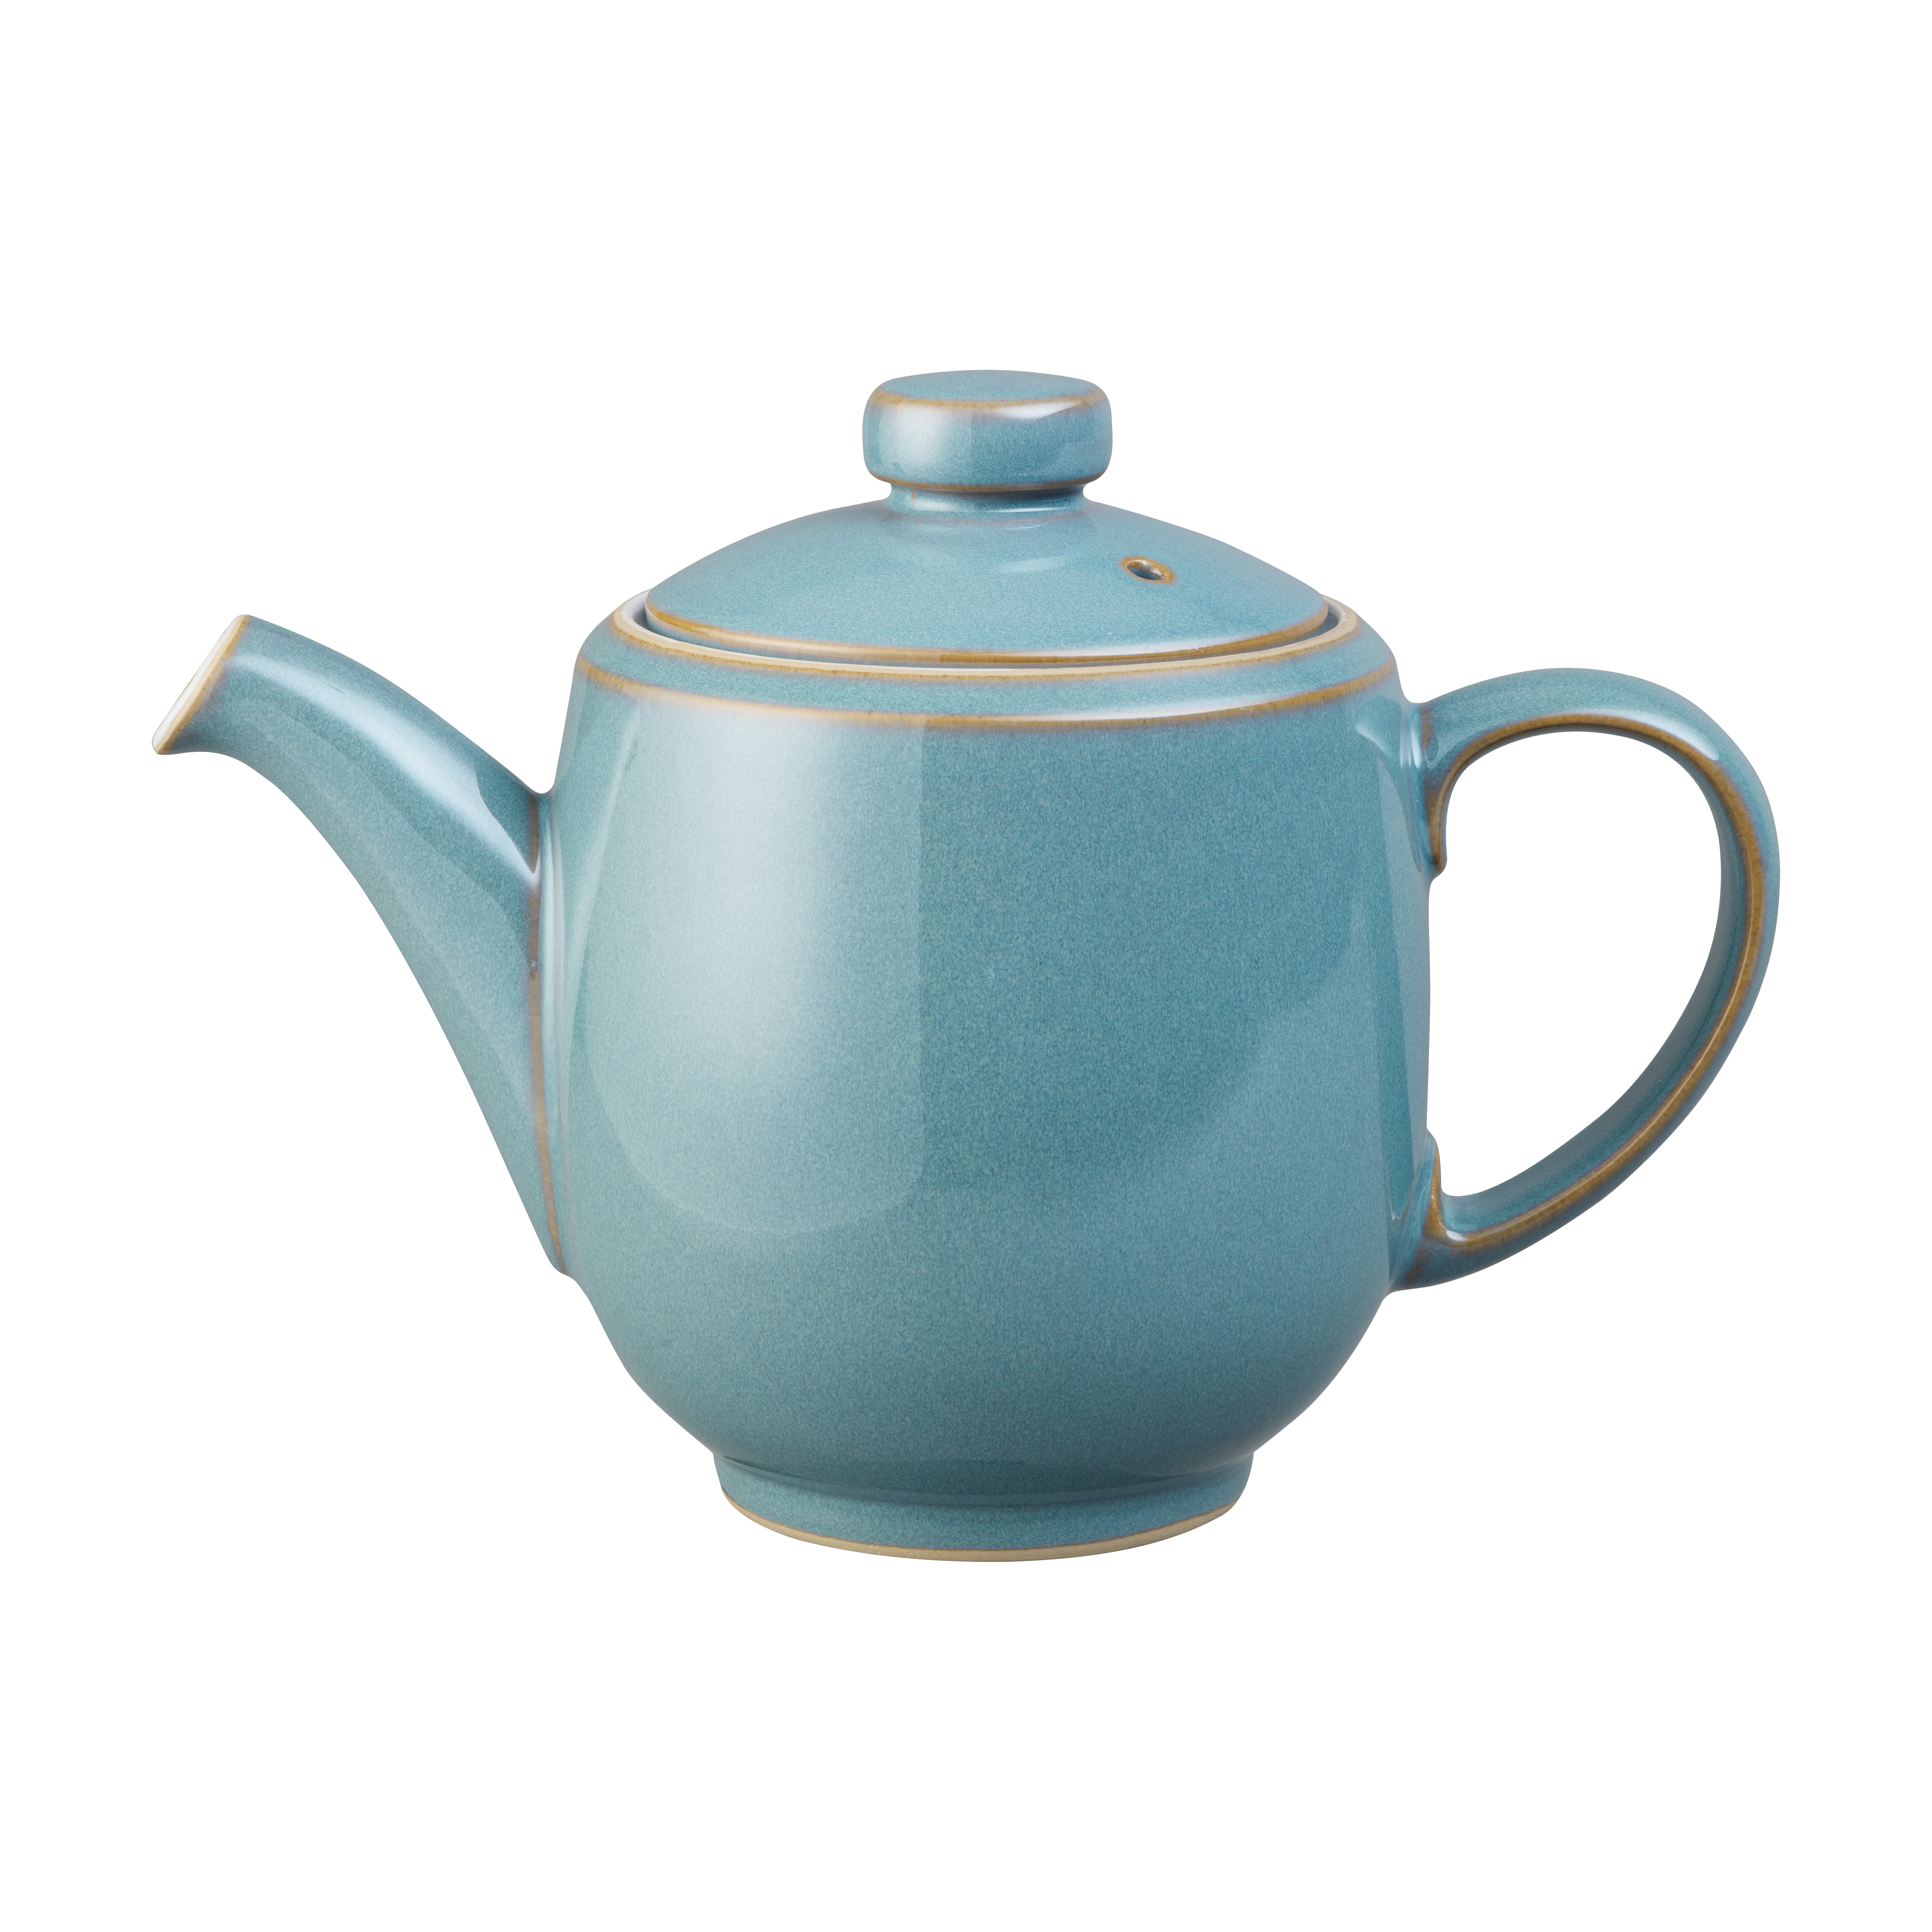 No obligation search for denby azure teapot with lid